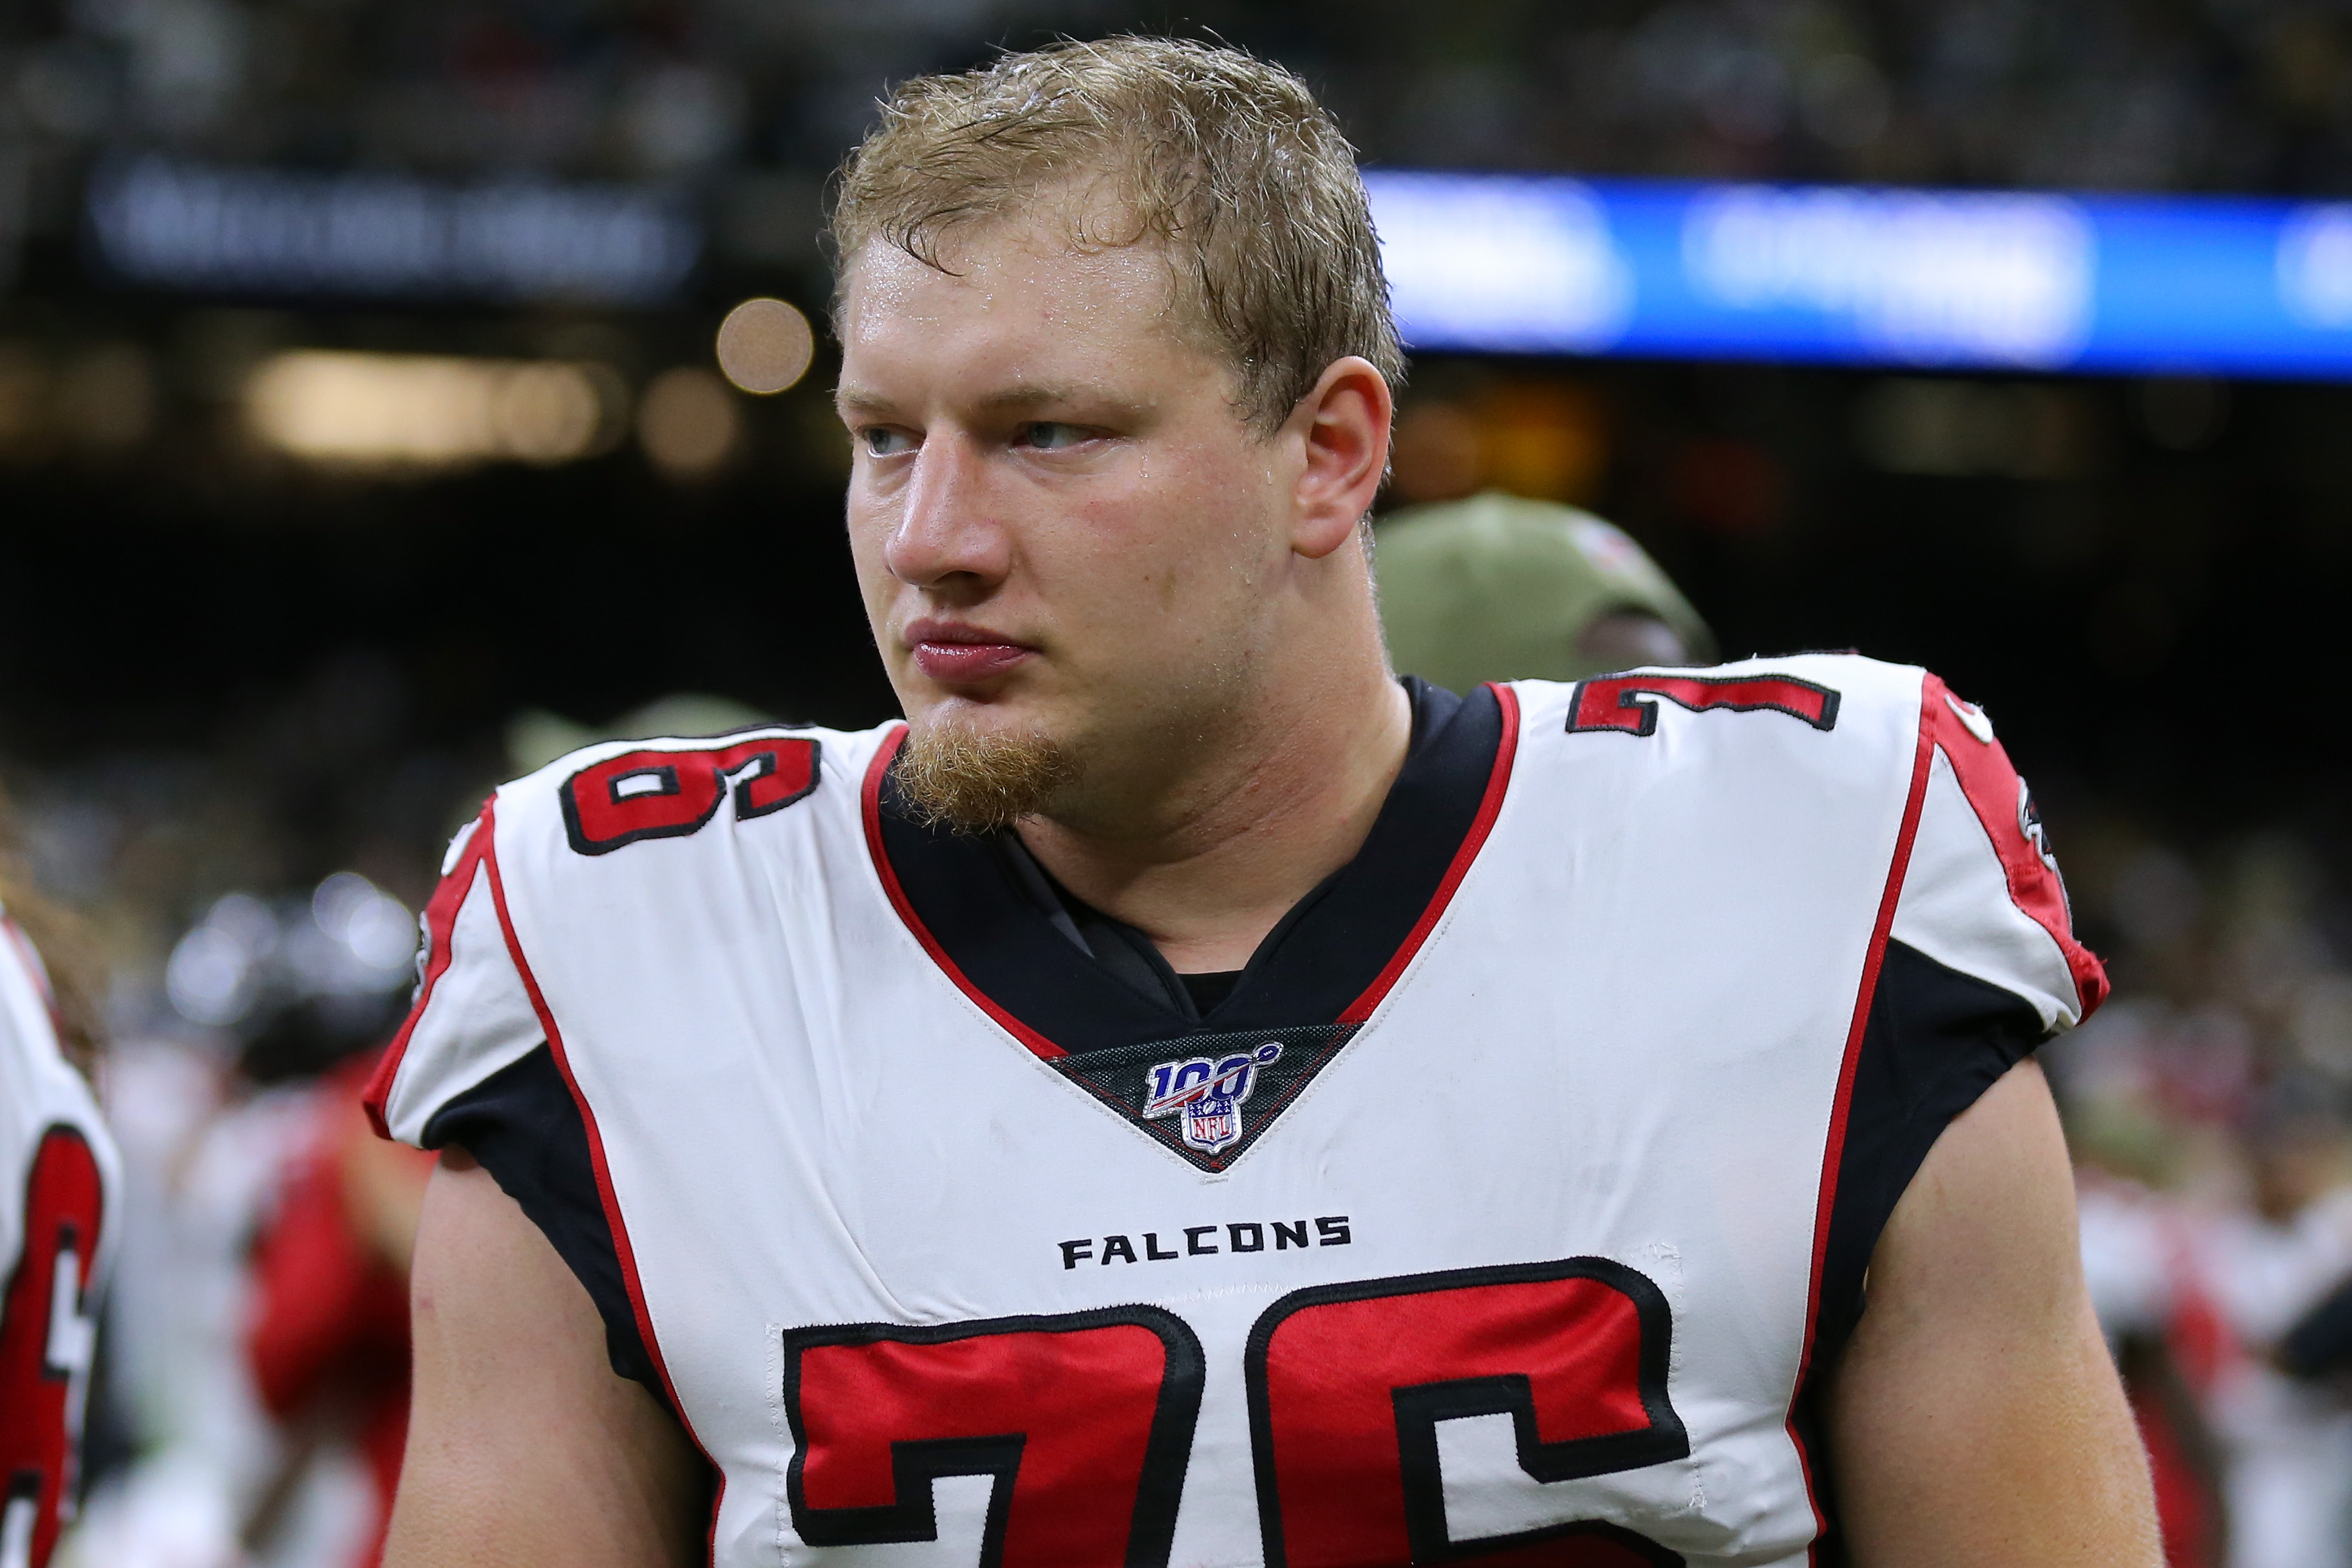 Falcons OT Kaleb McGary apologizes for George Floyd protests tweet